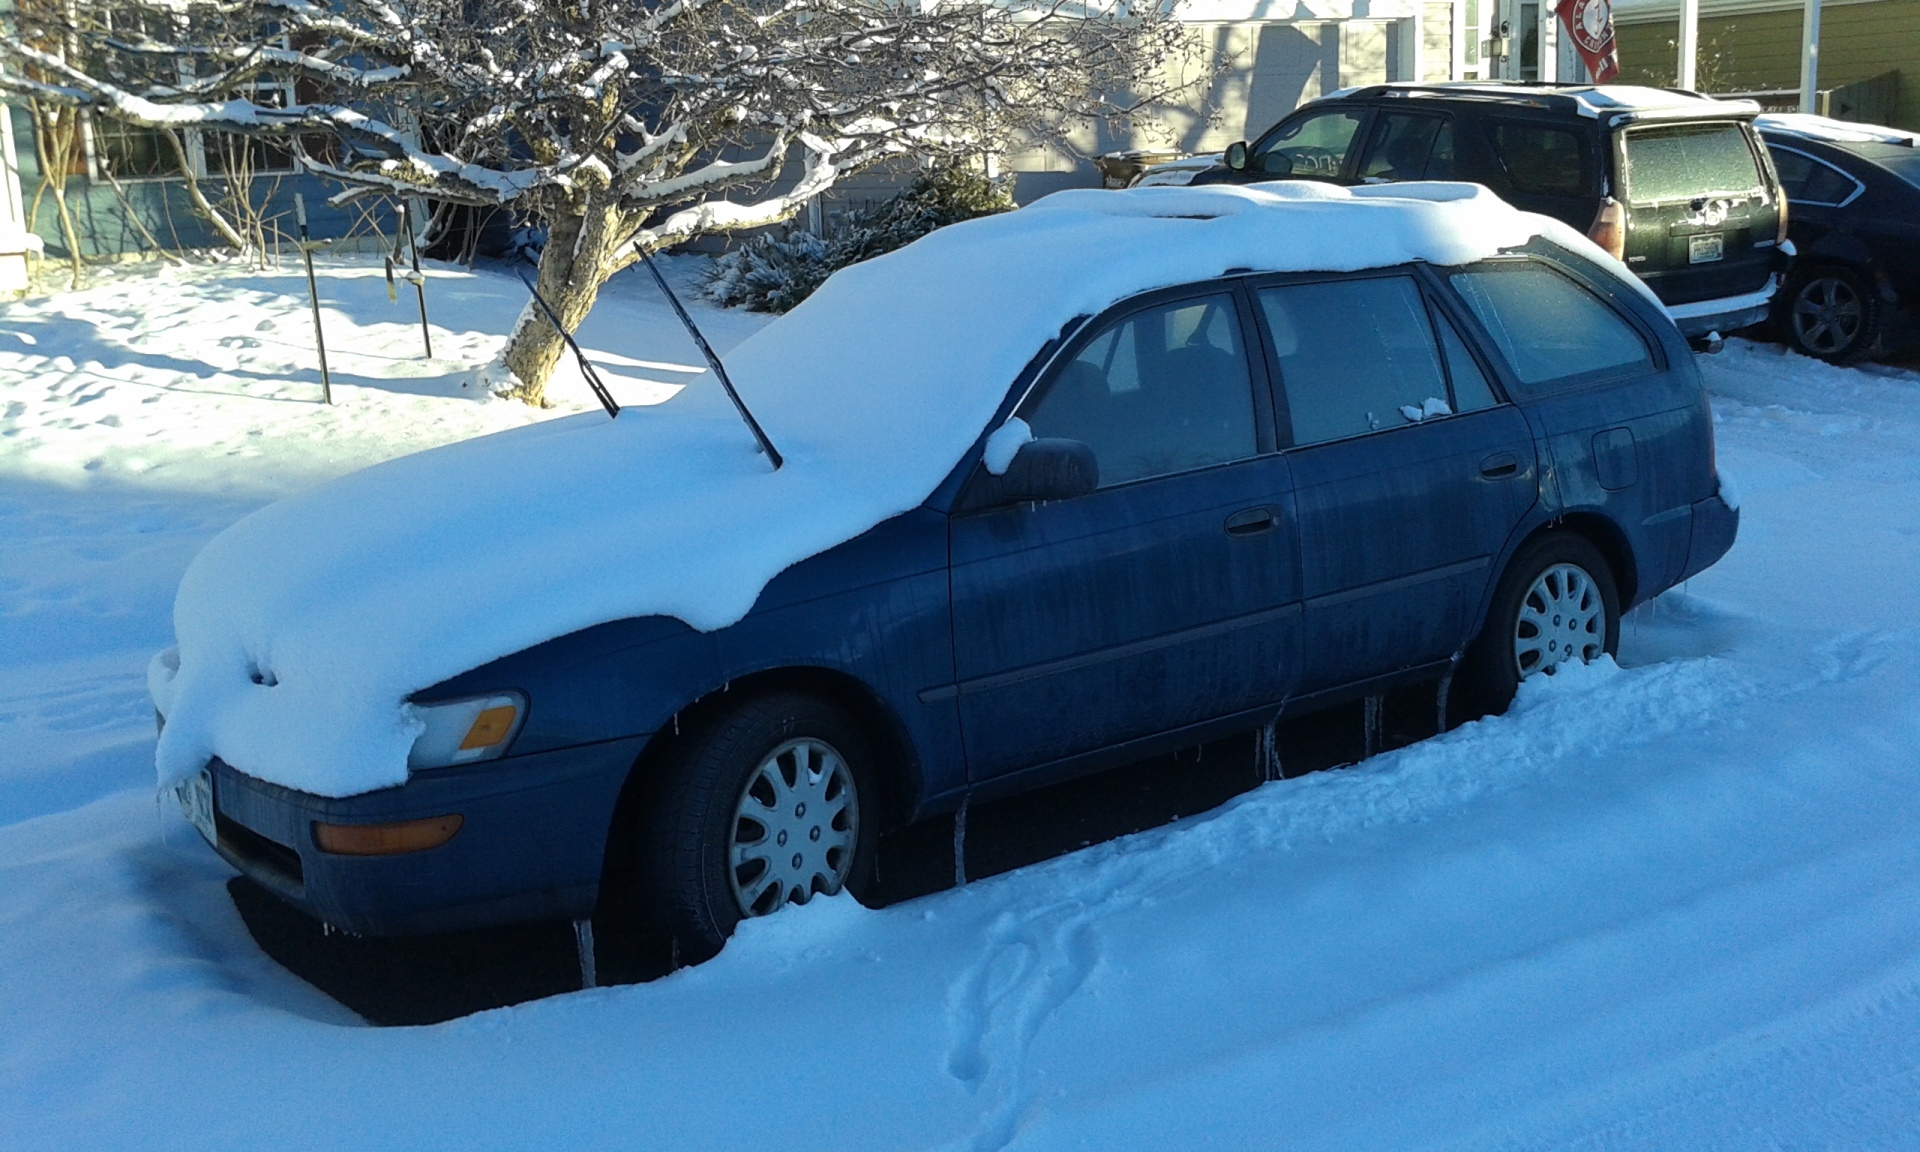 car buried in the snow at the curb